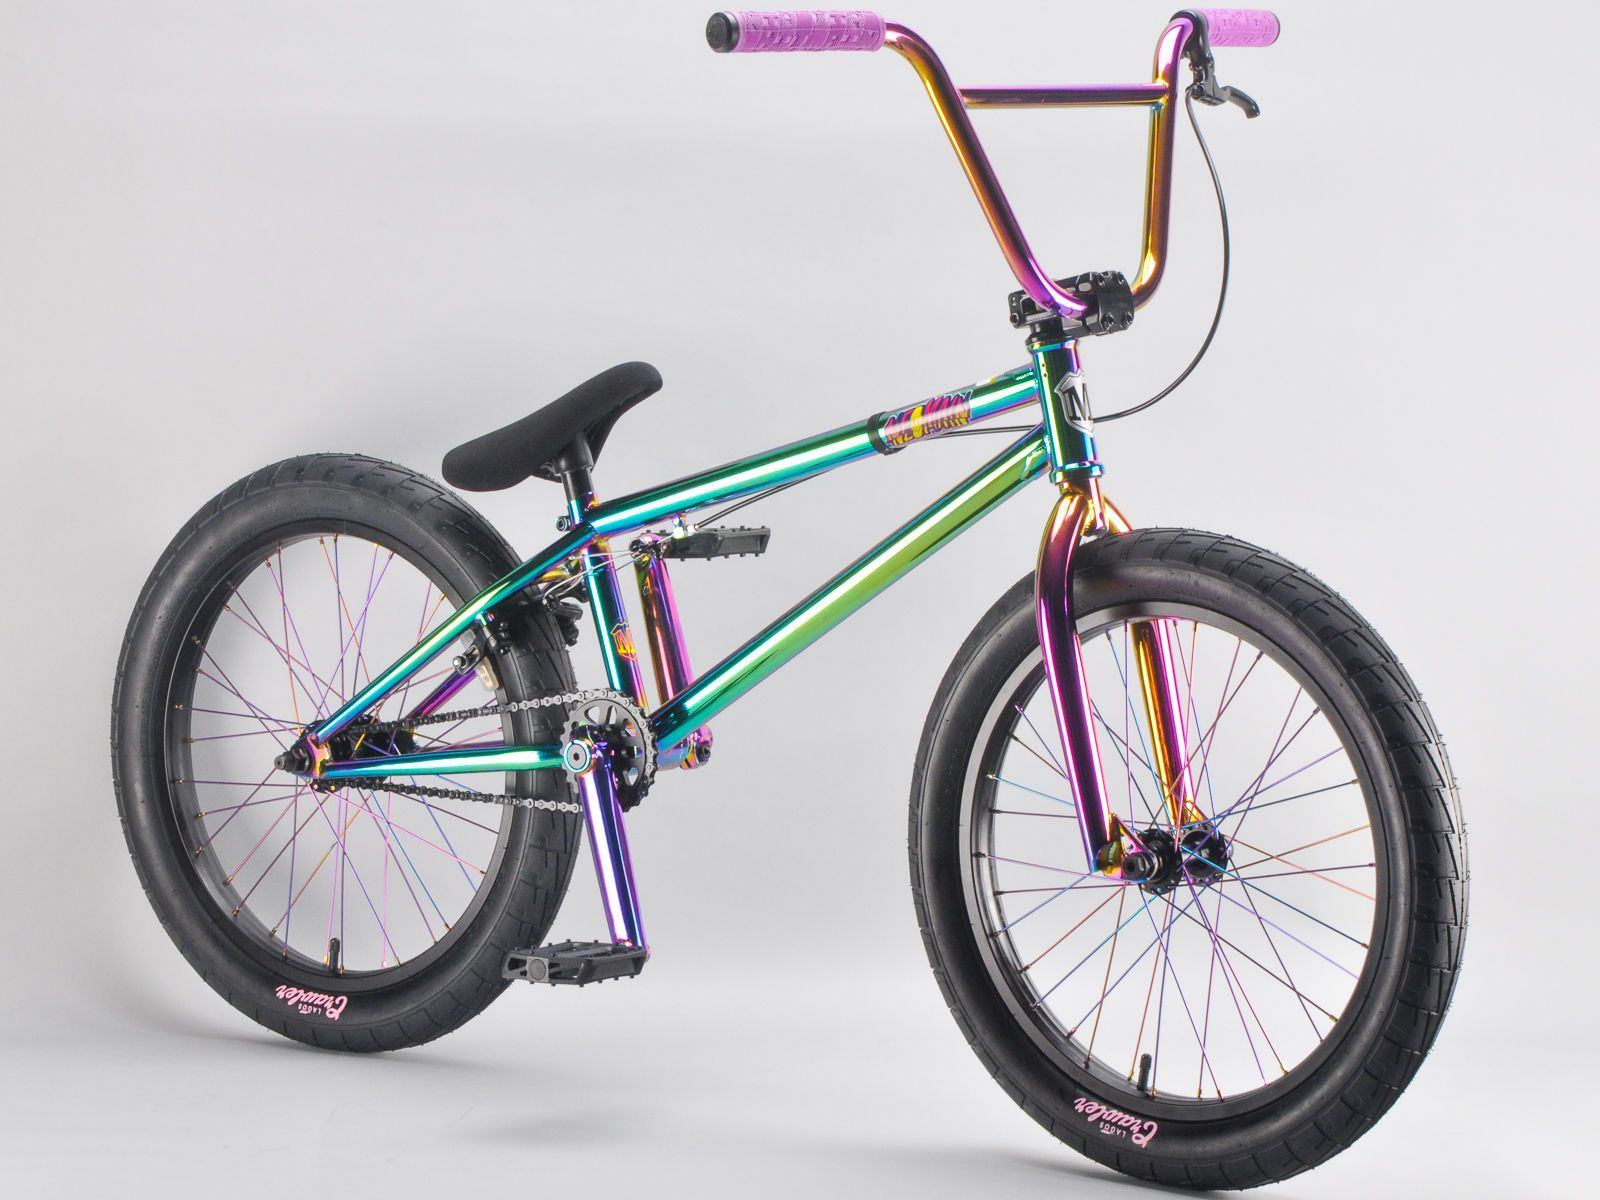 Bmx Parts Details About Mafiabikes Harry Main Madmain Neomain 20 Inch Bmx